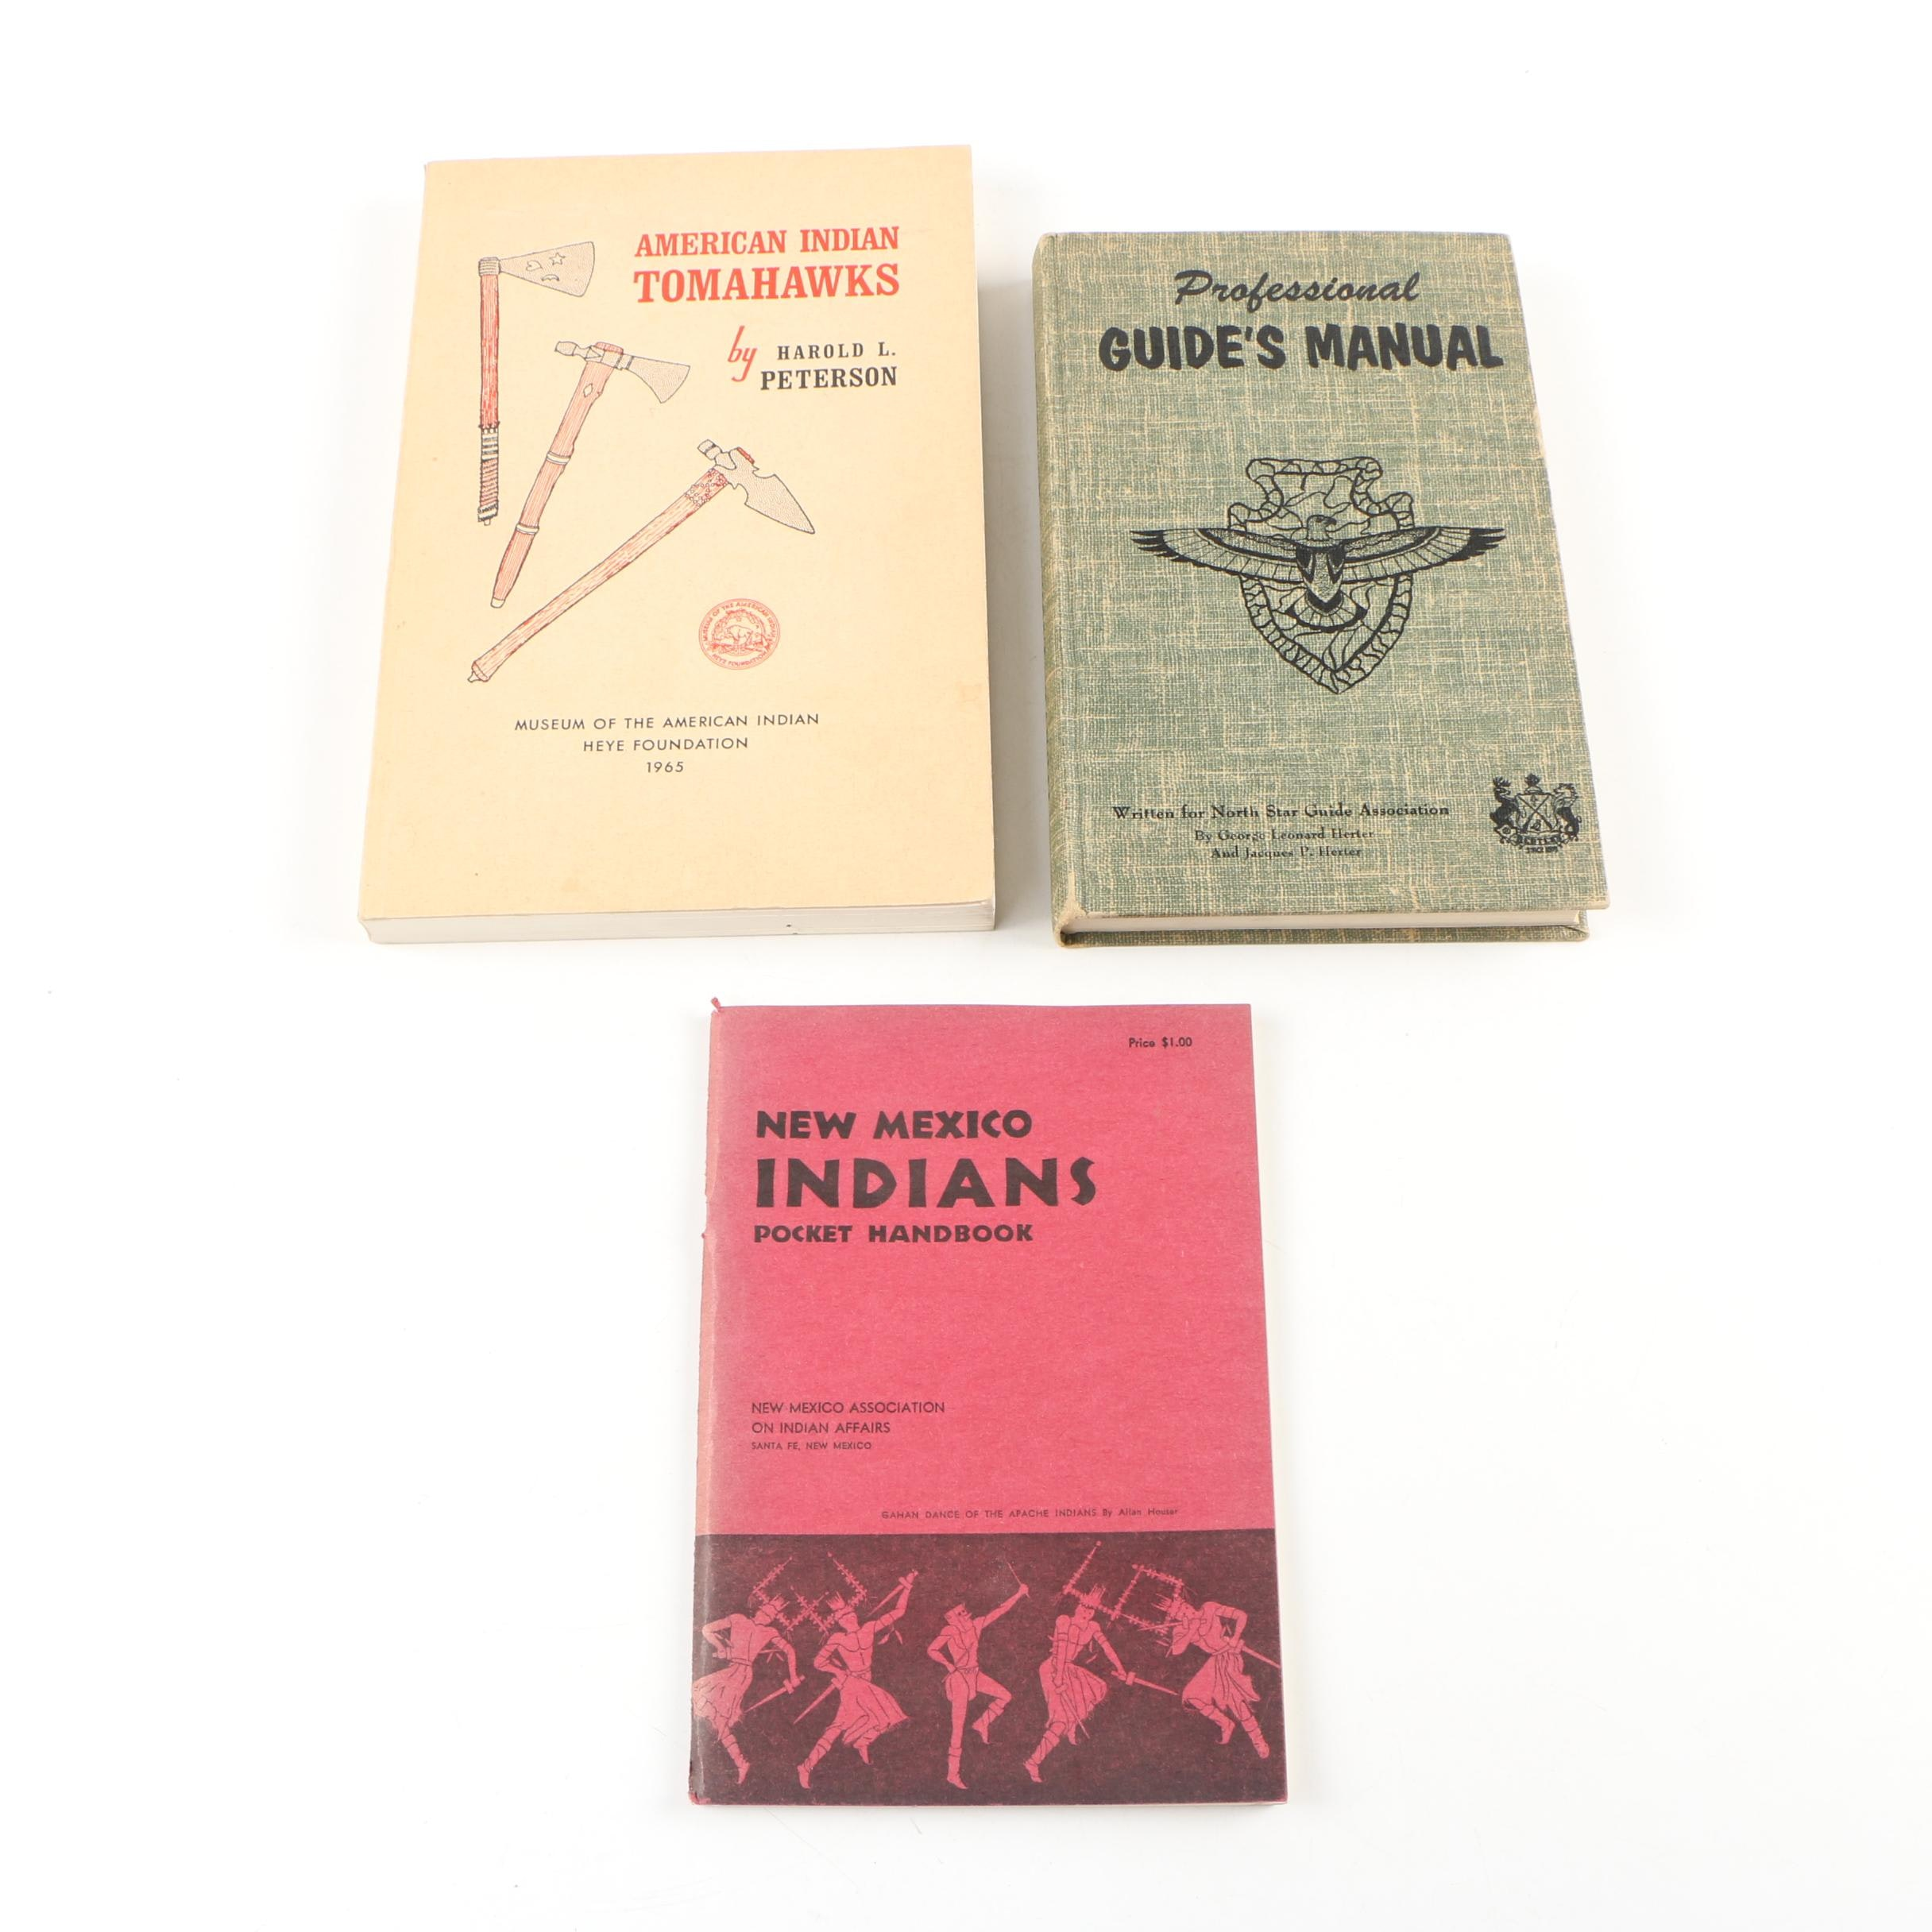 """Books on Native Americans featuring """"American Indian Tomahawks"""" by Peterson"""